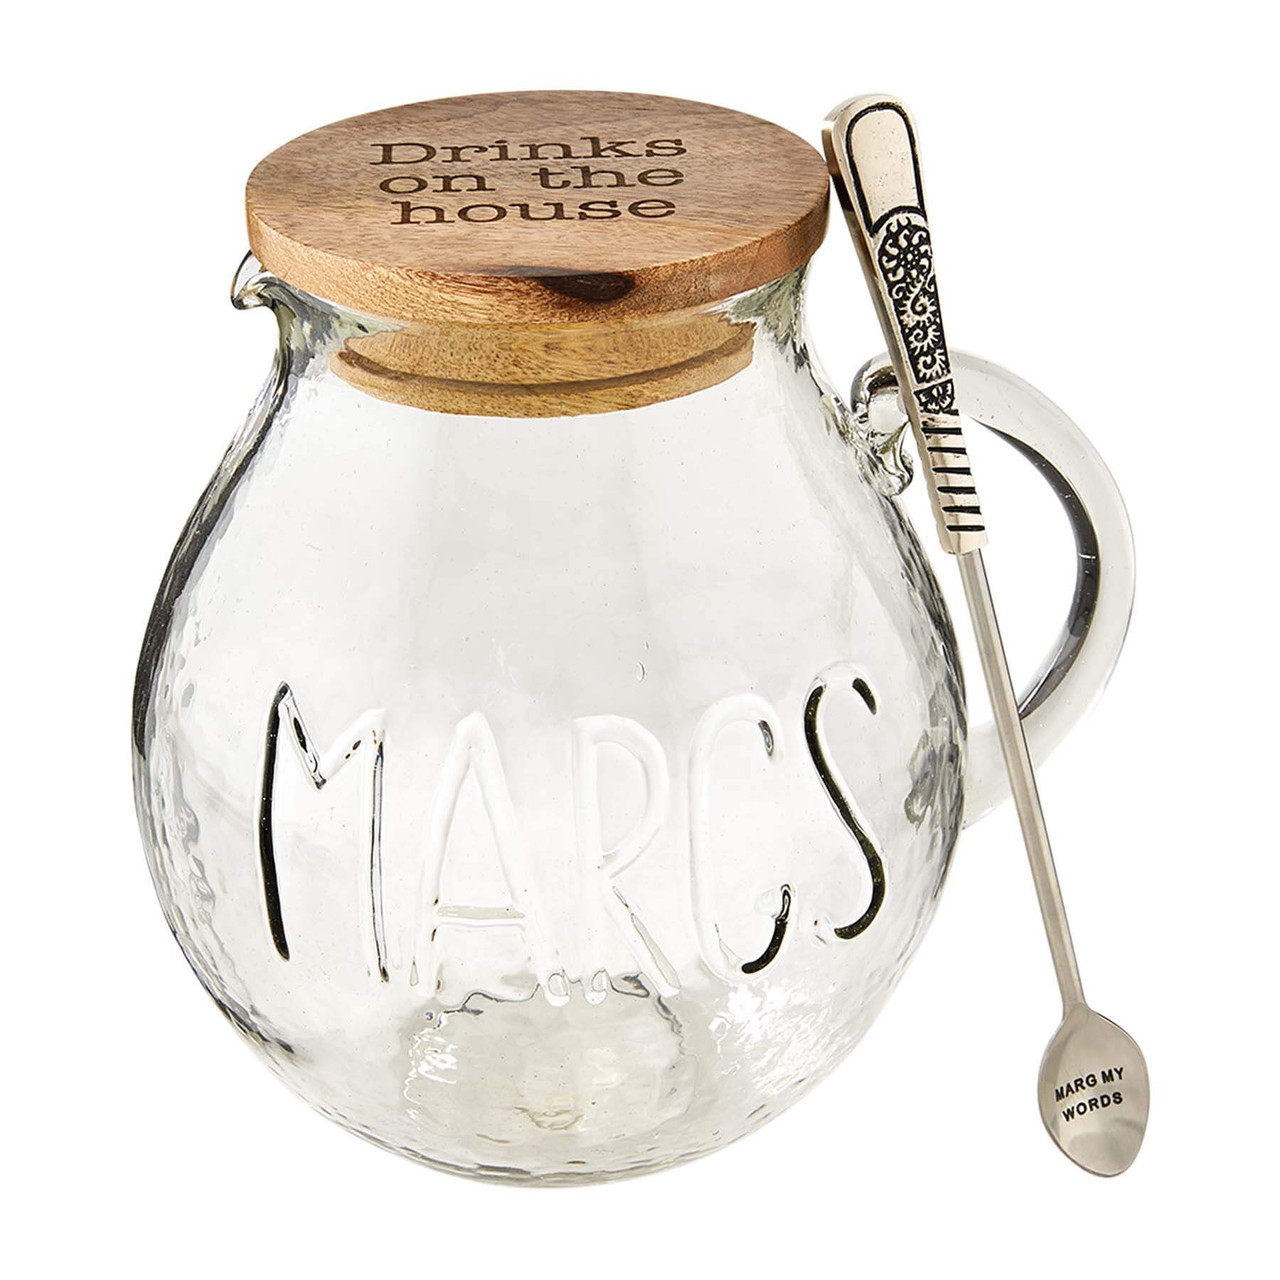 """Marg my words - you'll love our glass margarita pitcher set. The two piece set comes with a """"MARGS"""" embossed glass pitcher that has an etched mango wood lid that reads """"Drinks on the house"""". The set also arrives with a silver-plated spoon for mixing that reads """"MARG MY WORDS""""."""